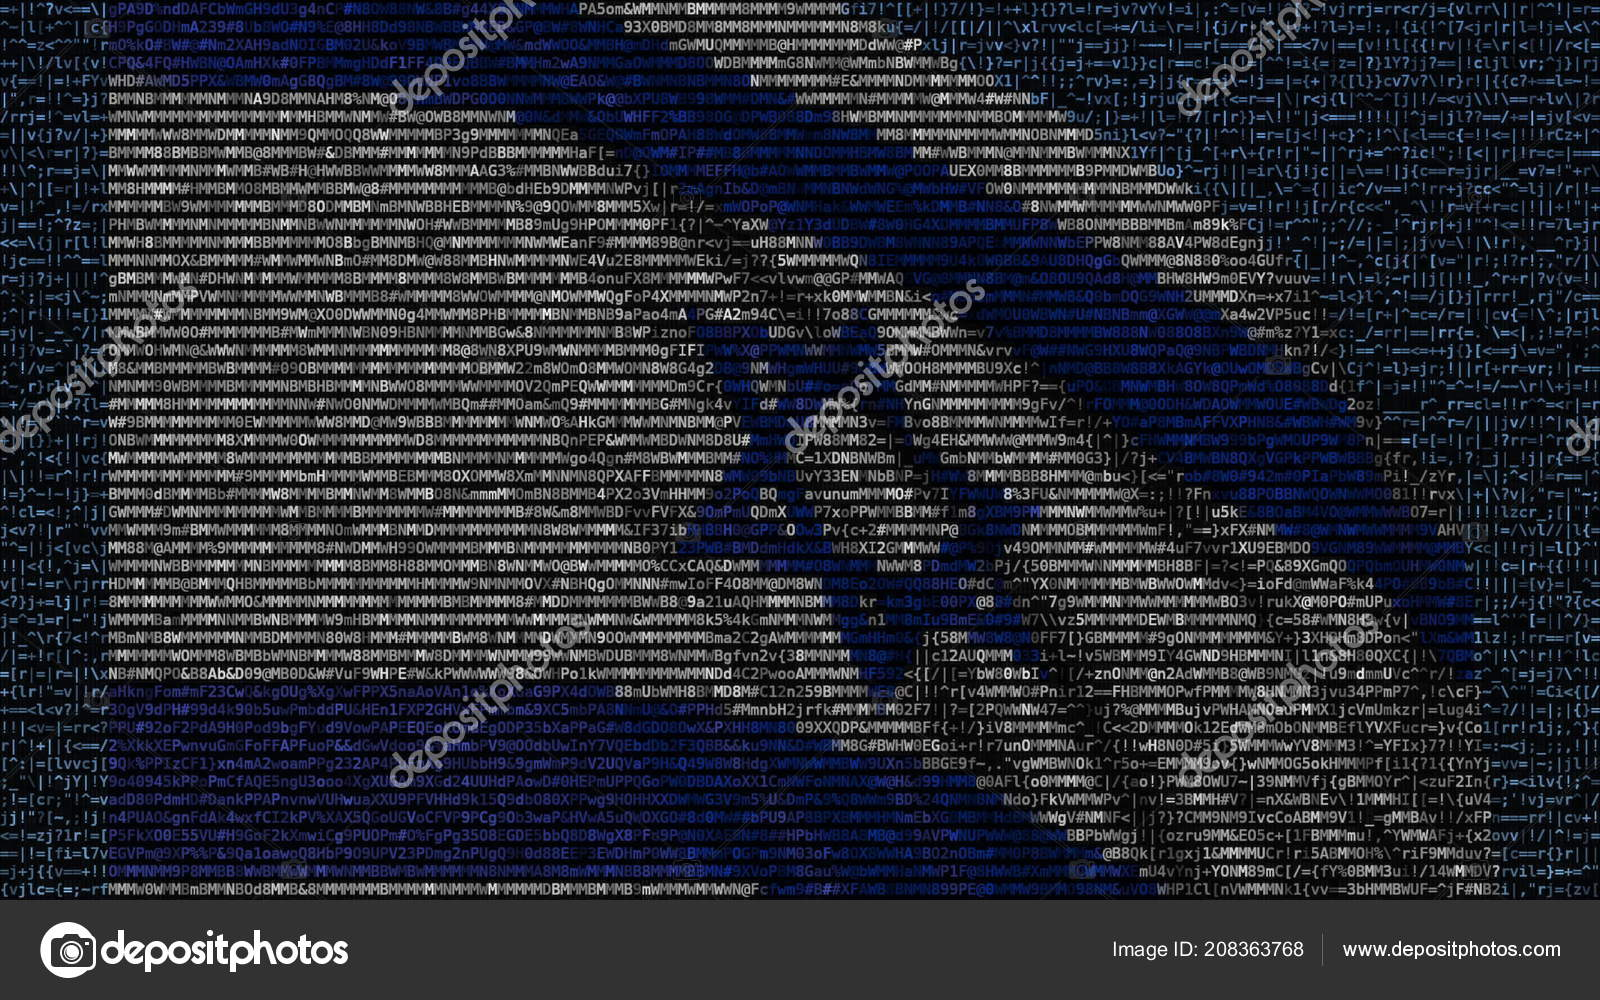 Waving Flag Of Israel Made Of Text Symbols On A Computer Screen